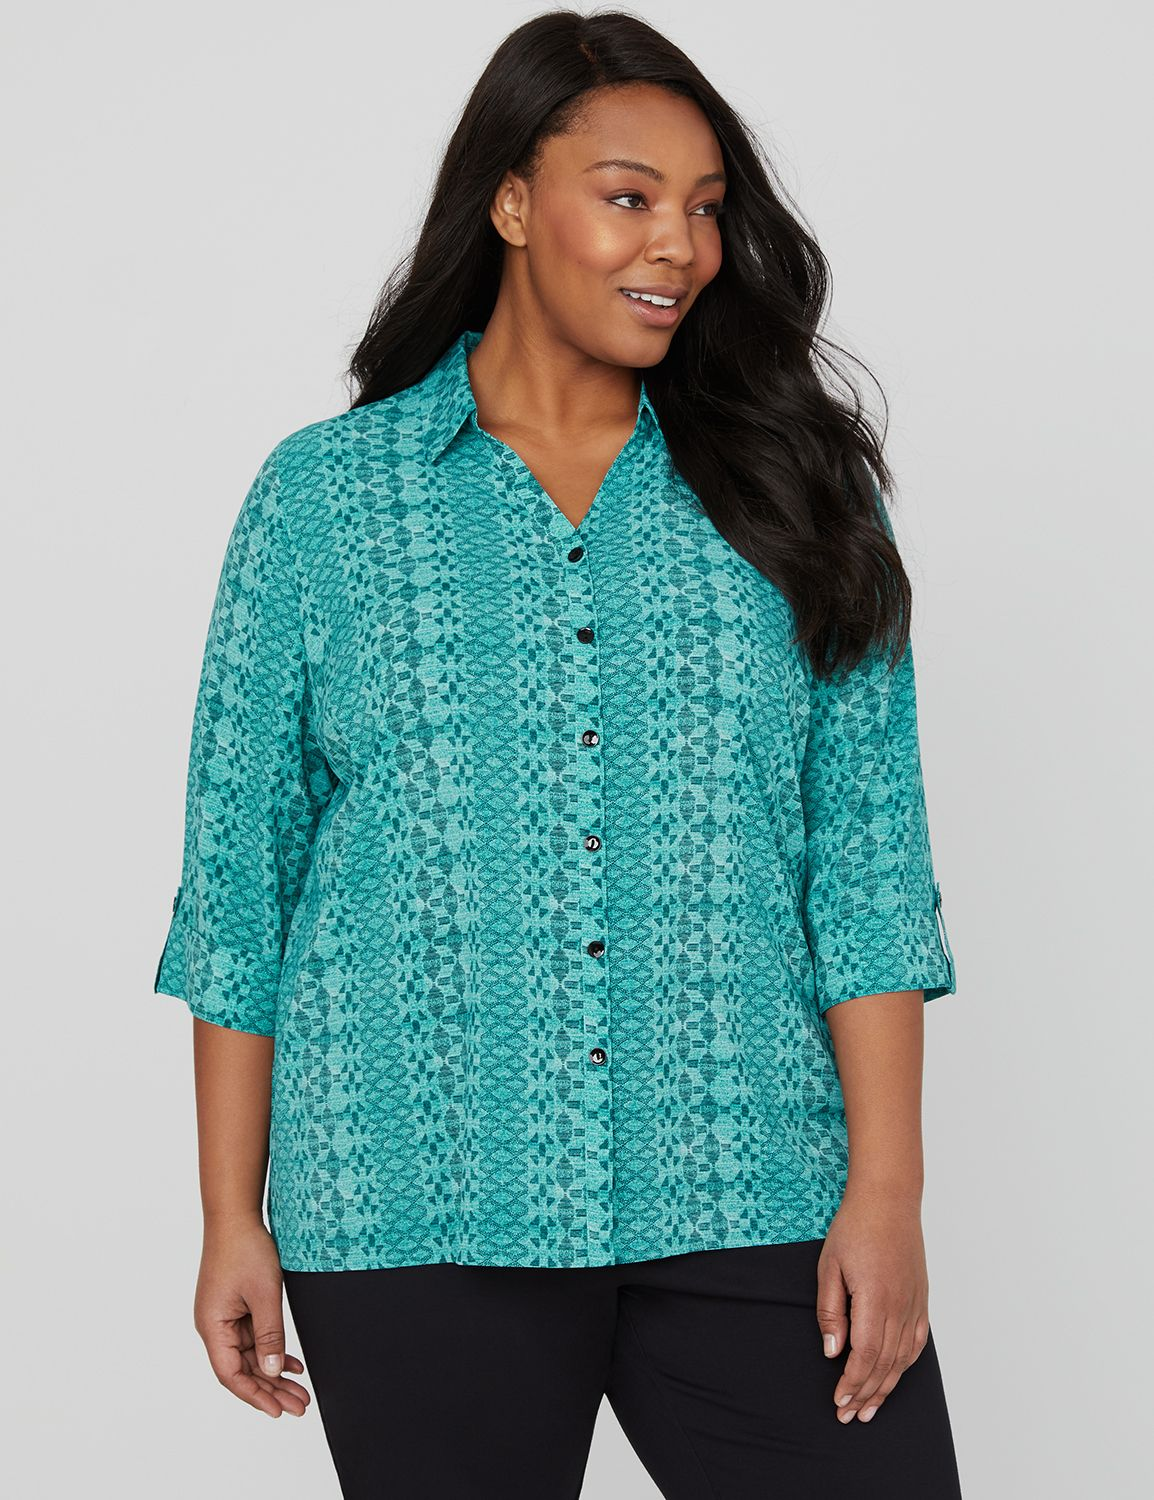 Maldives Buttonfront Shirt 3/4 Slv Collared CDC Blouse MP-300104923